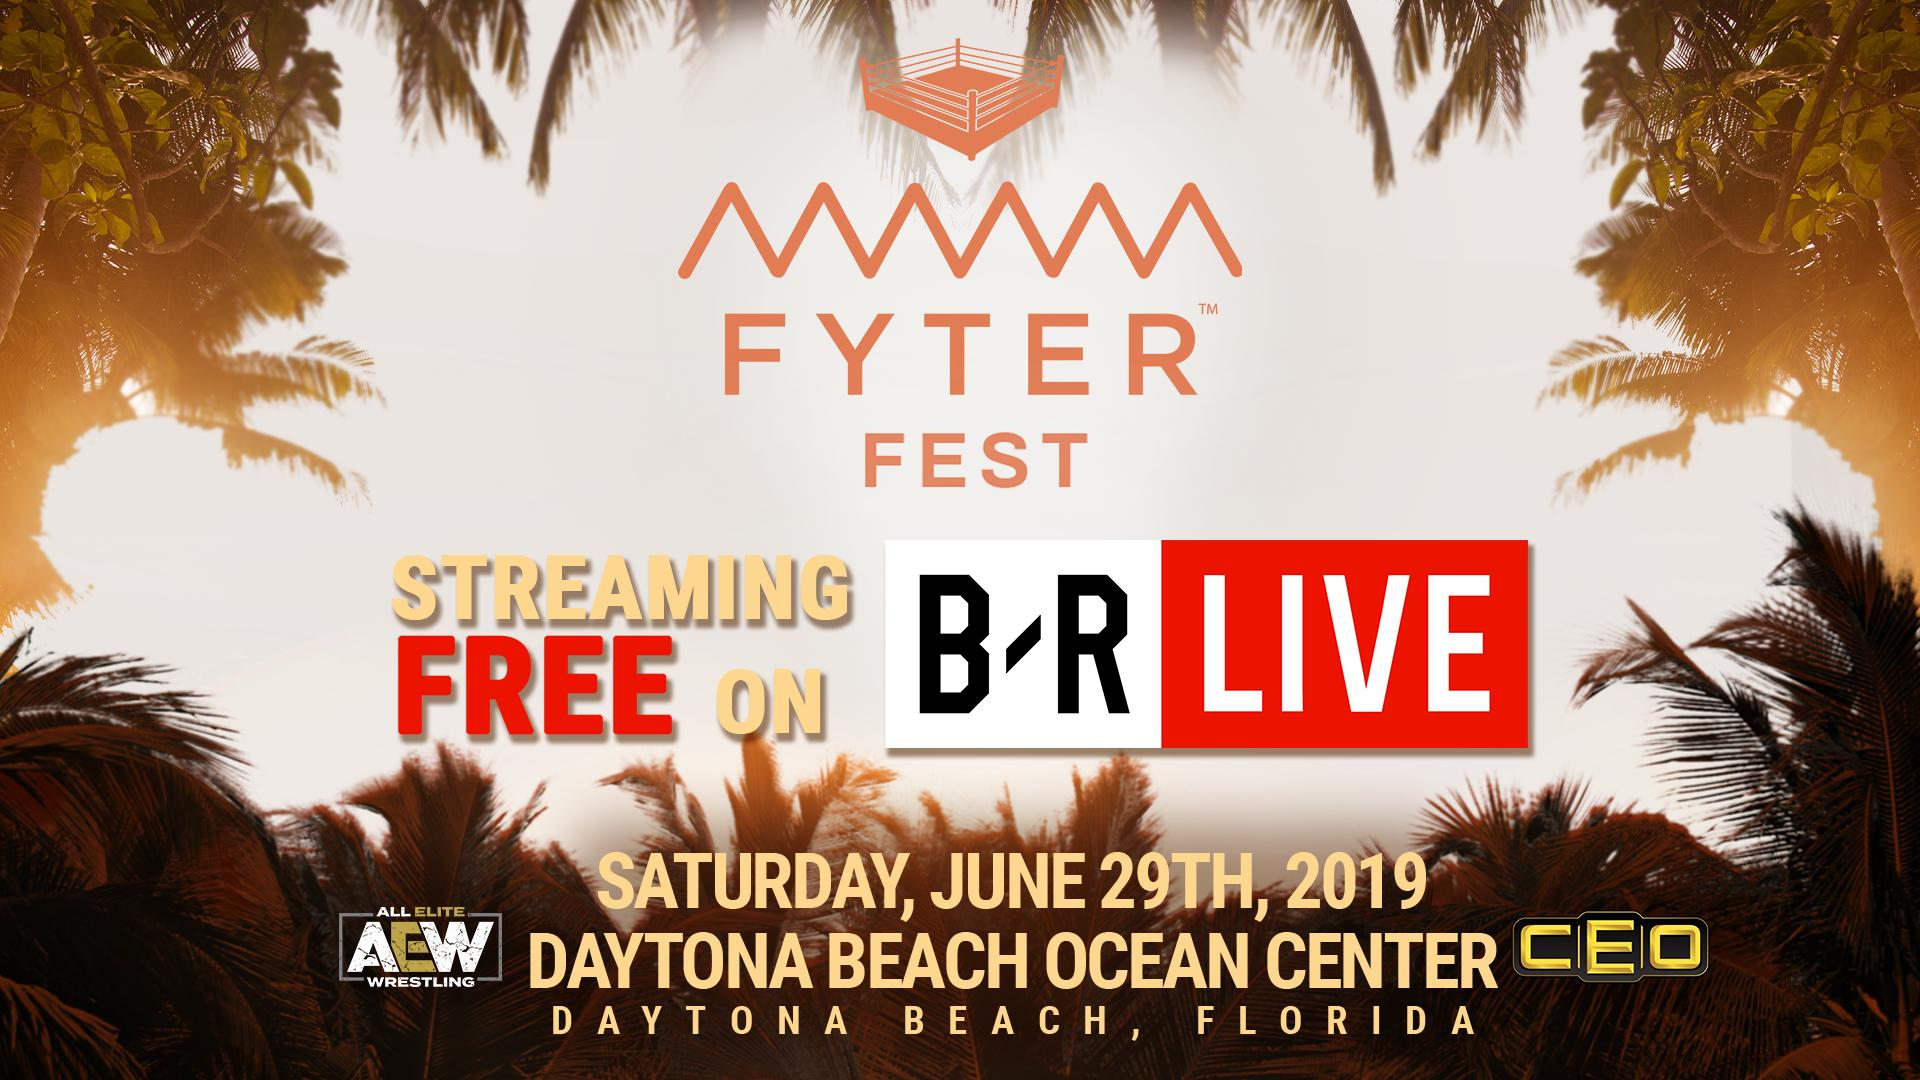 Catch Fyter Fest, AEW's next major show, free of cost.